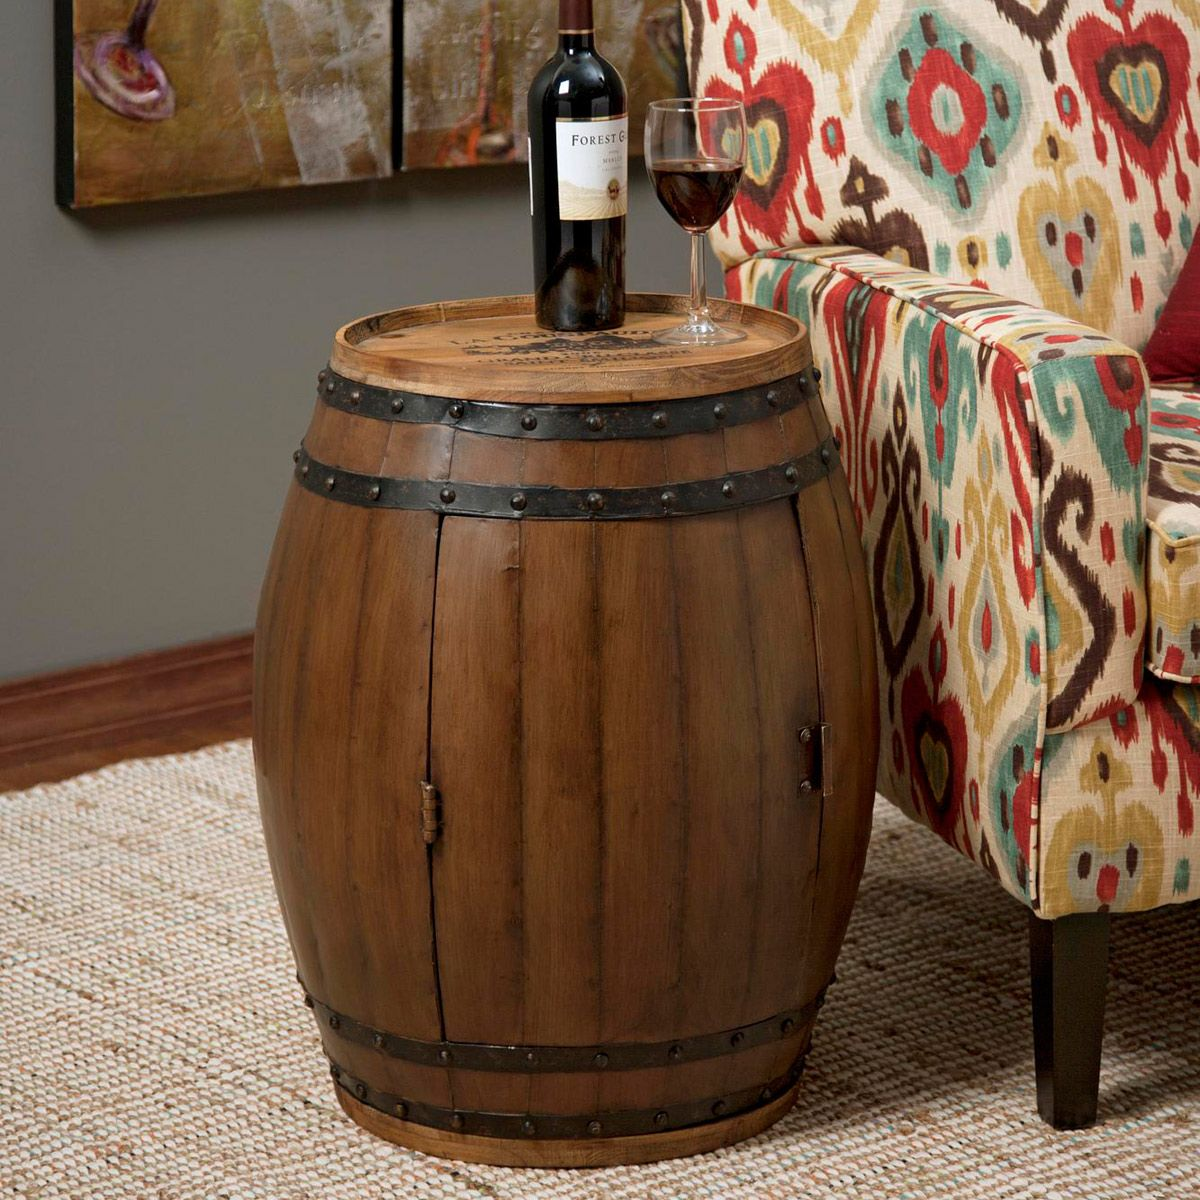 Barrel Table and Wine Rack